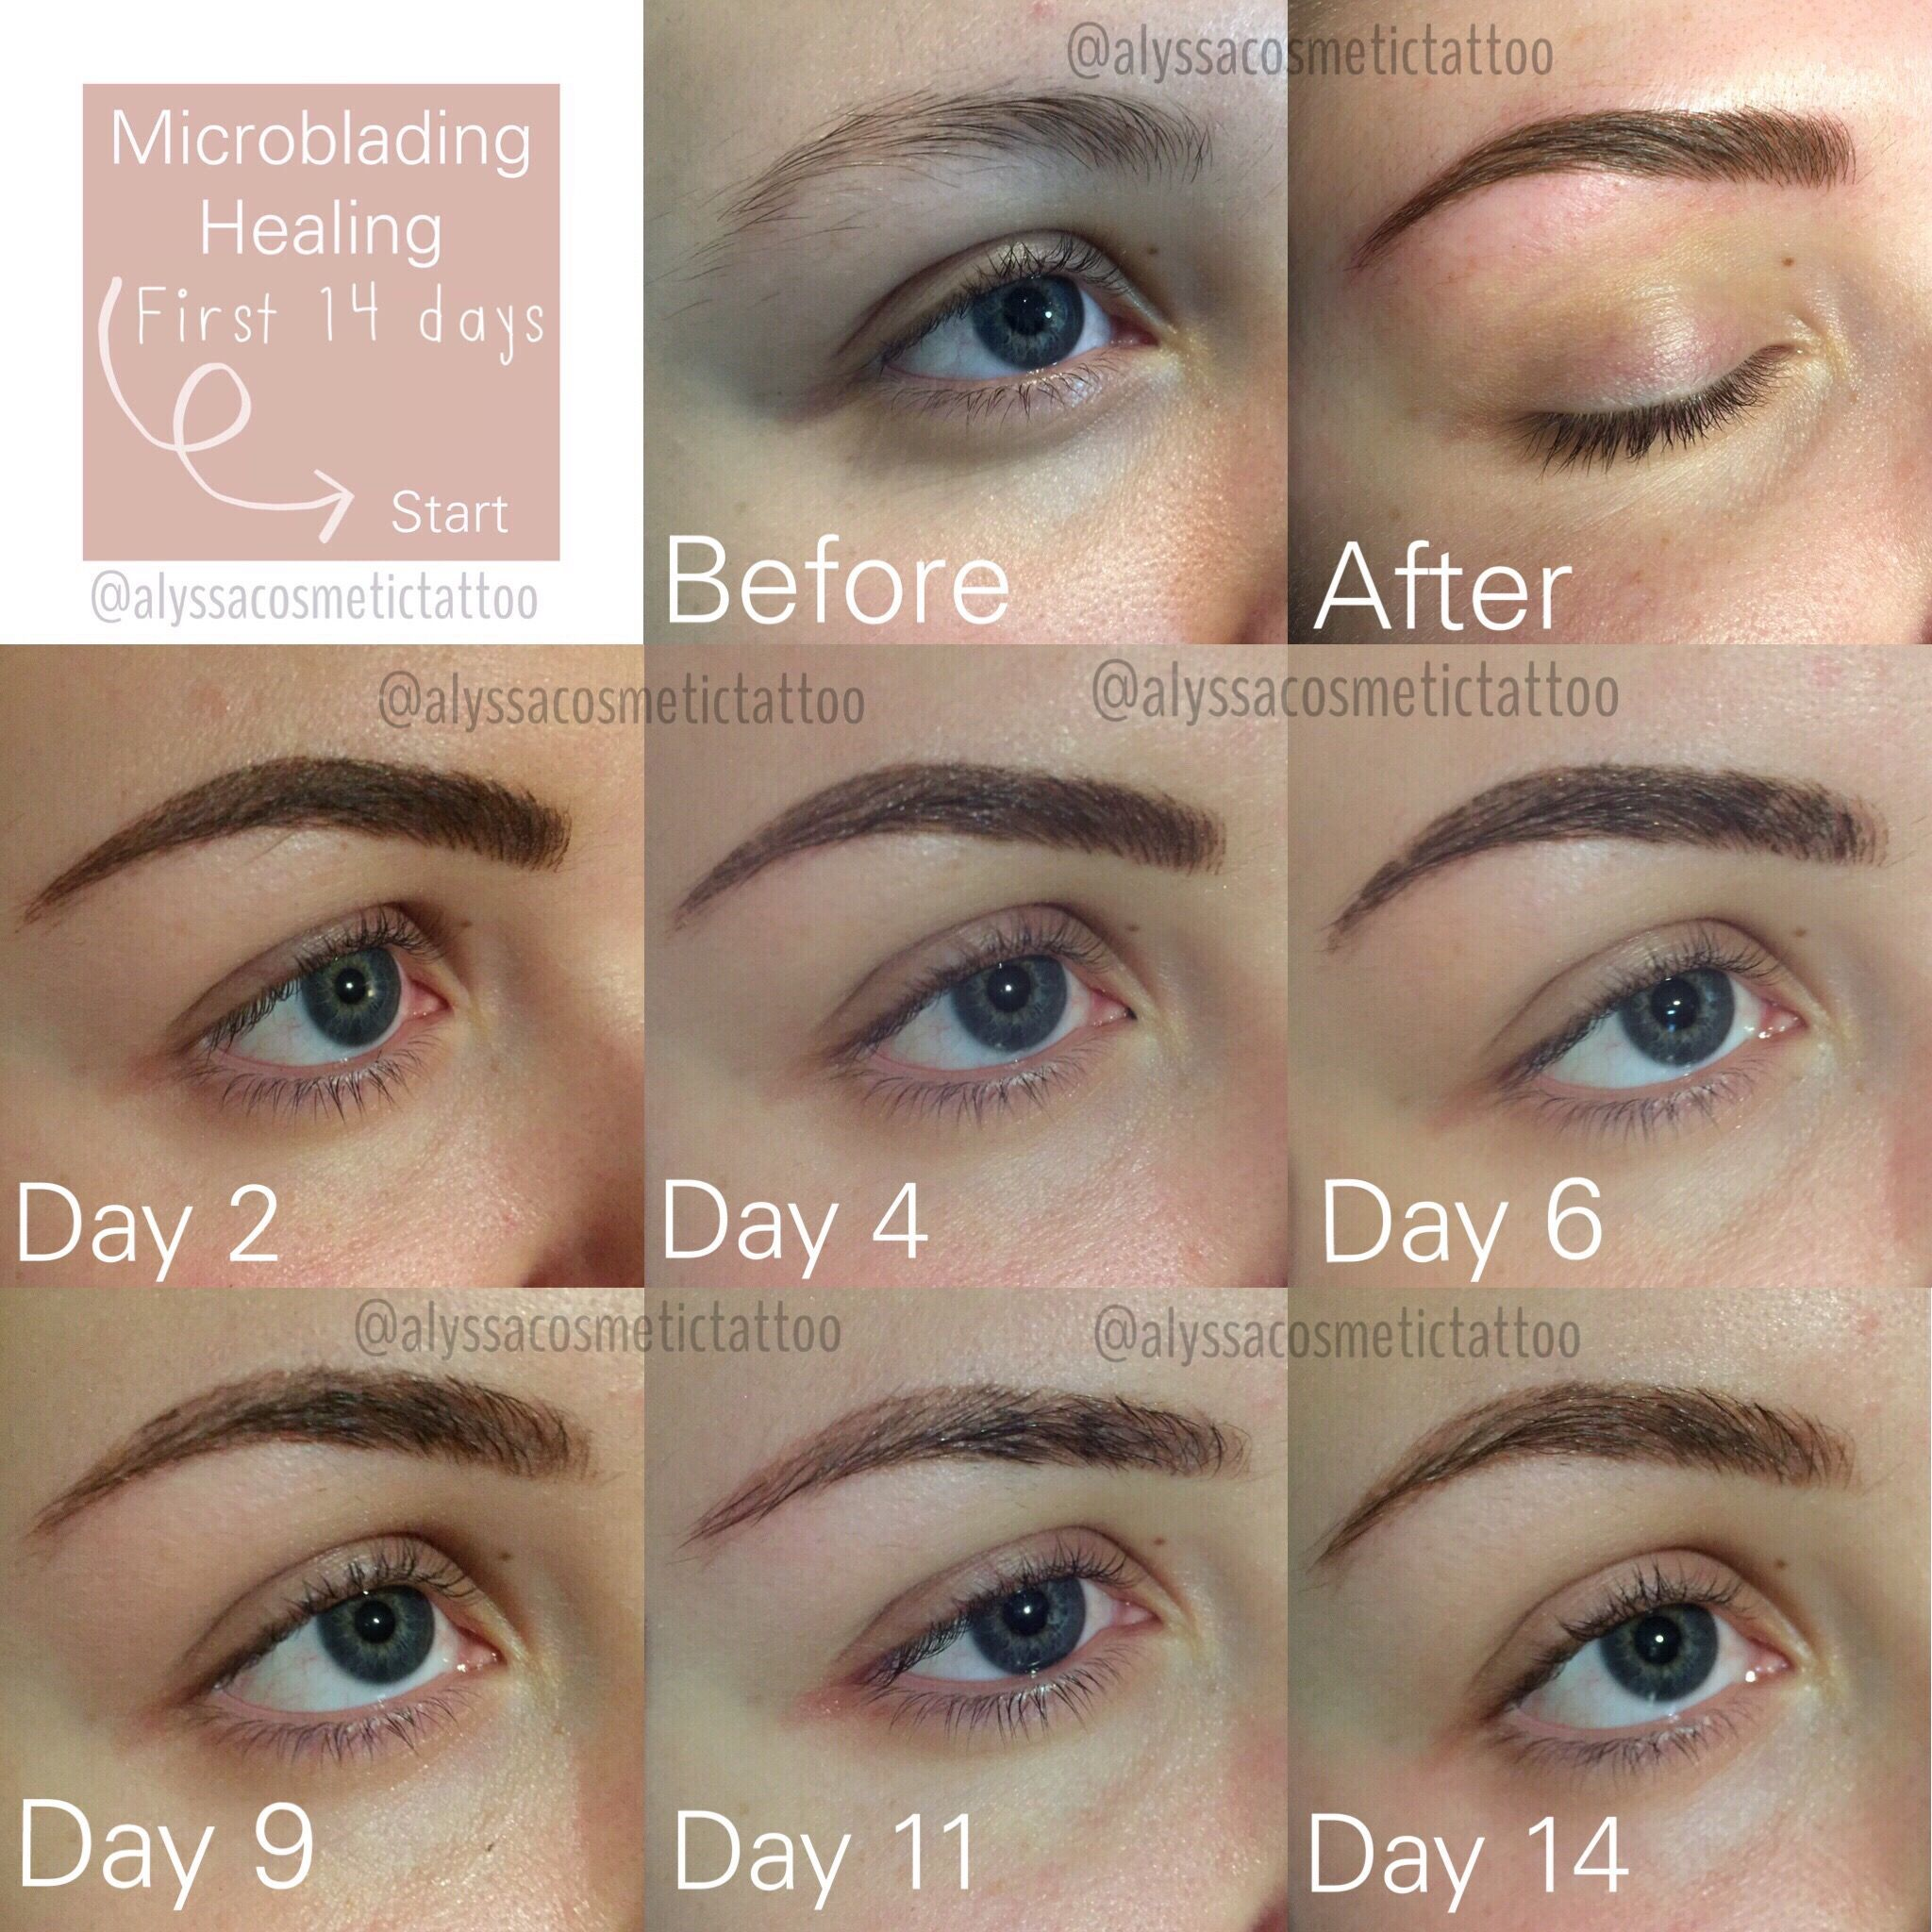 First 14 days of the healing process after Microblading are always ...